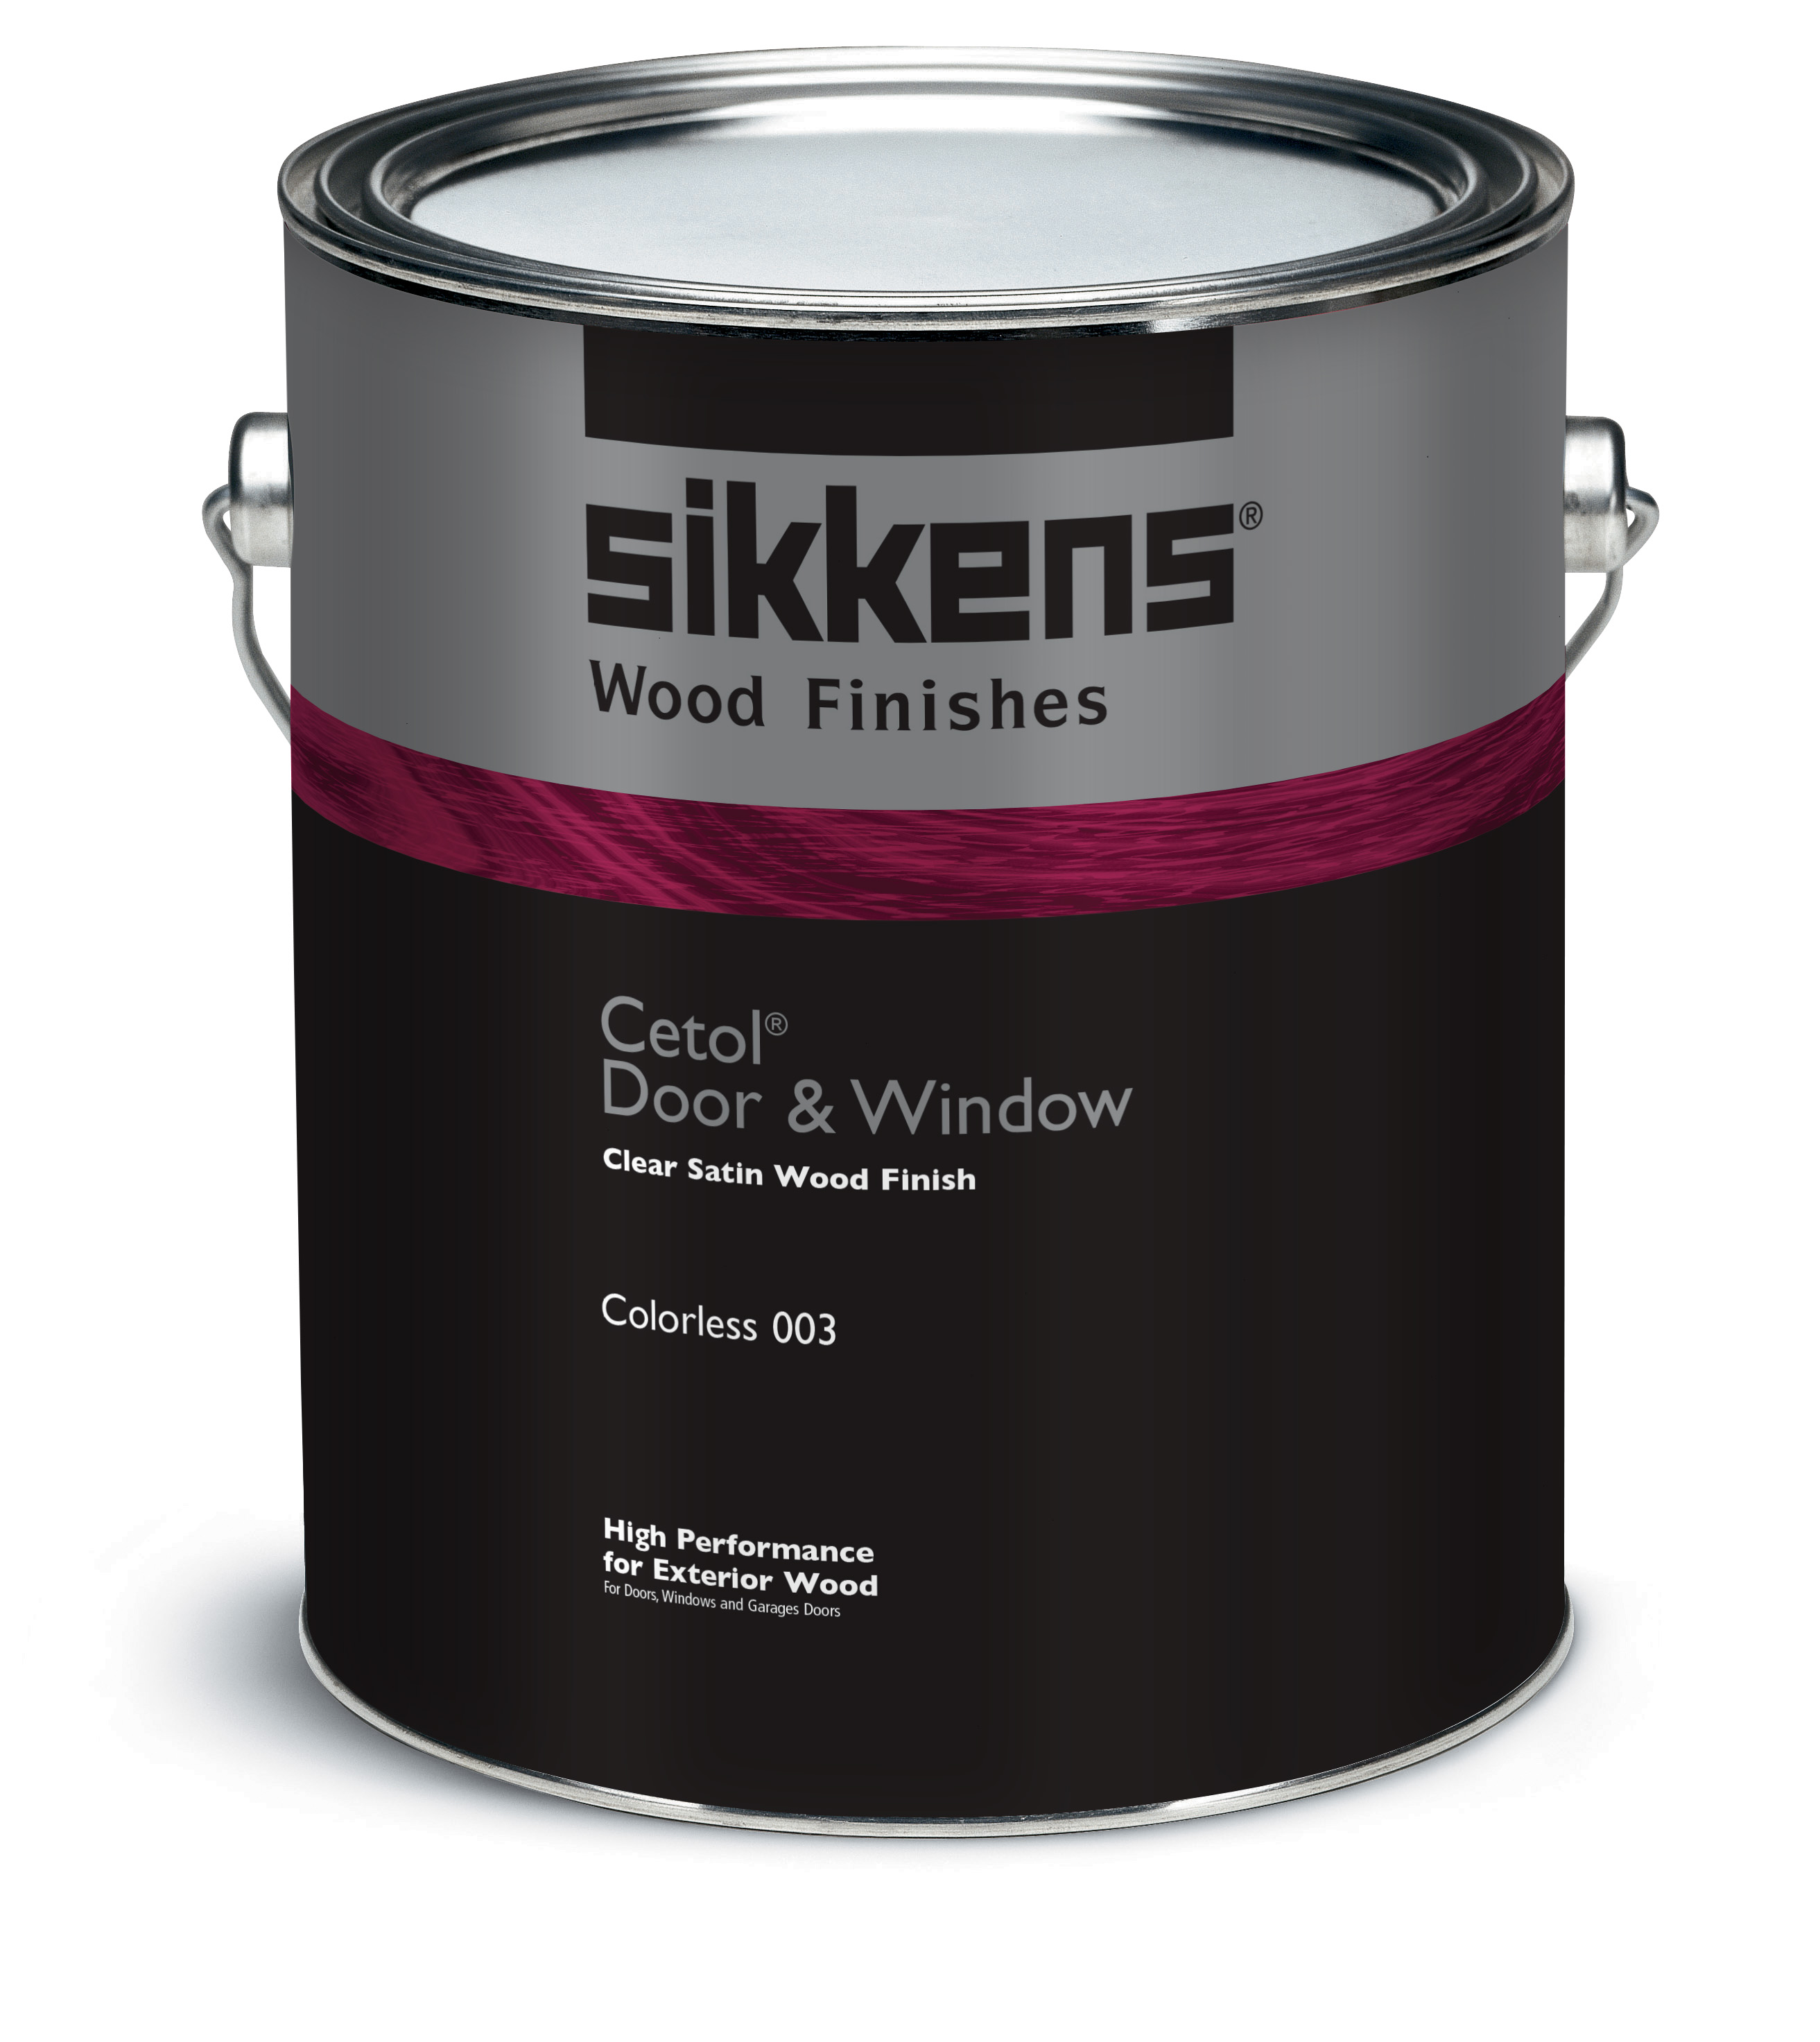 Sikkens Wood Finishes Superdeck Wood Finishes Deck